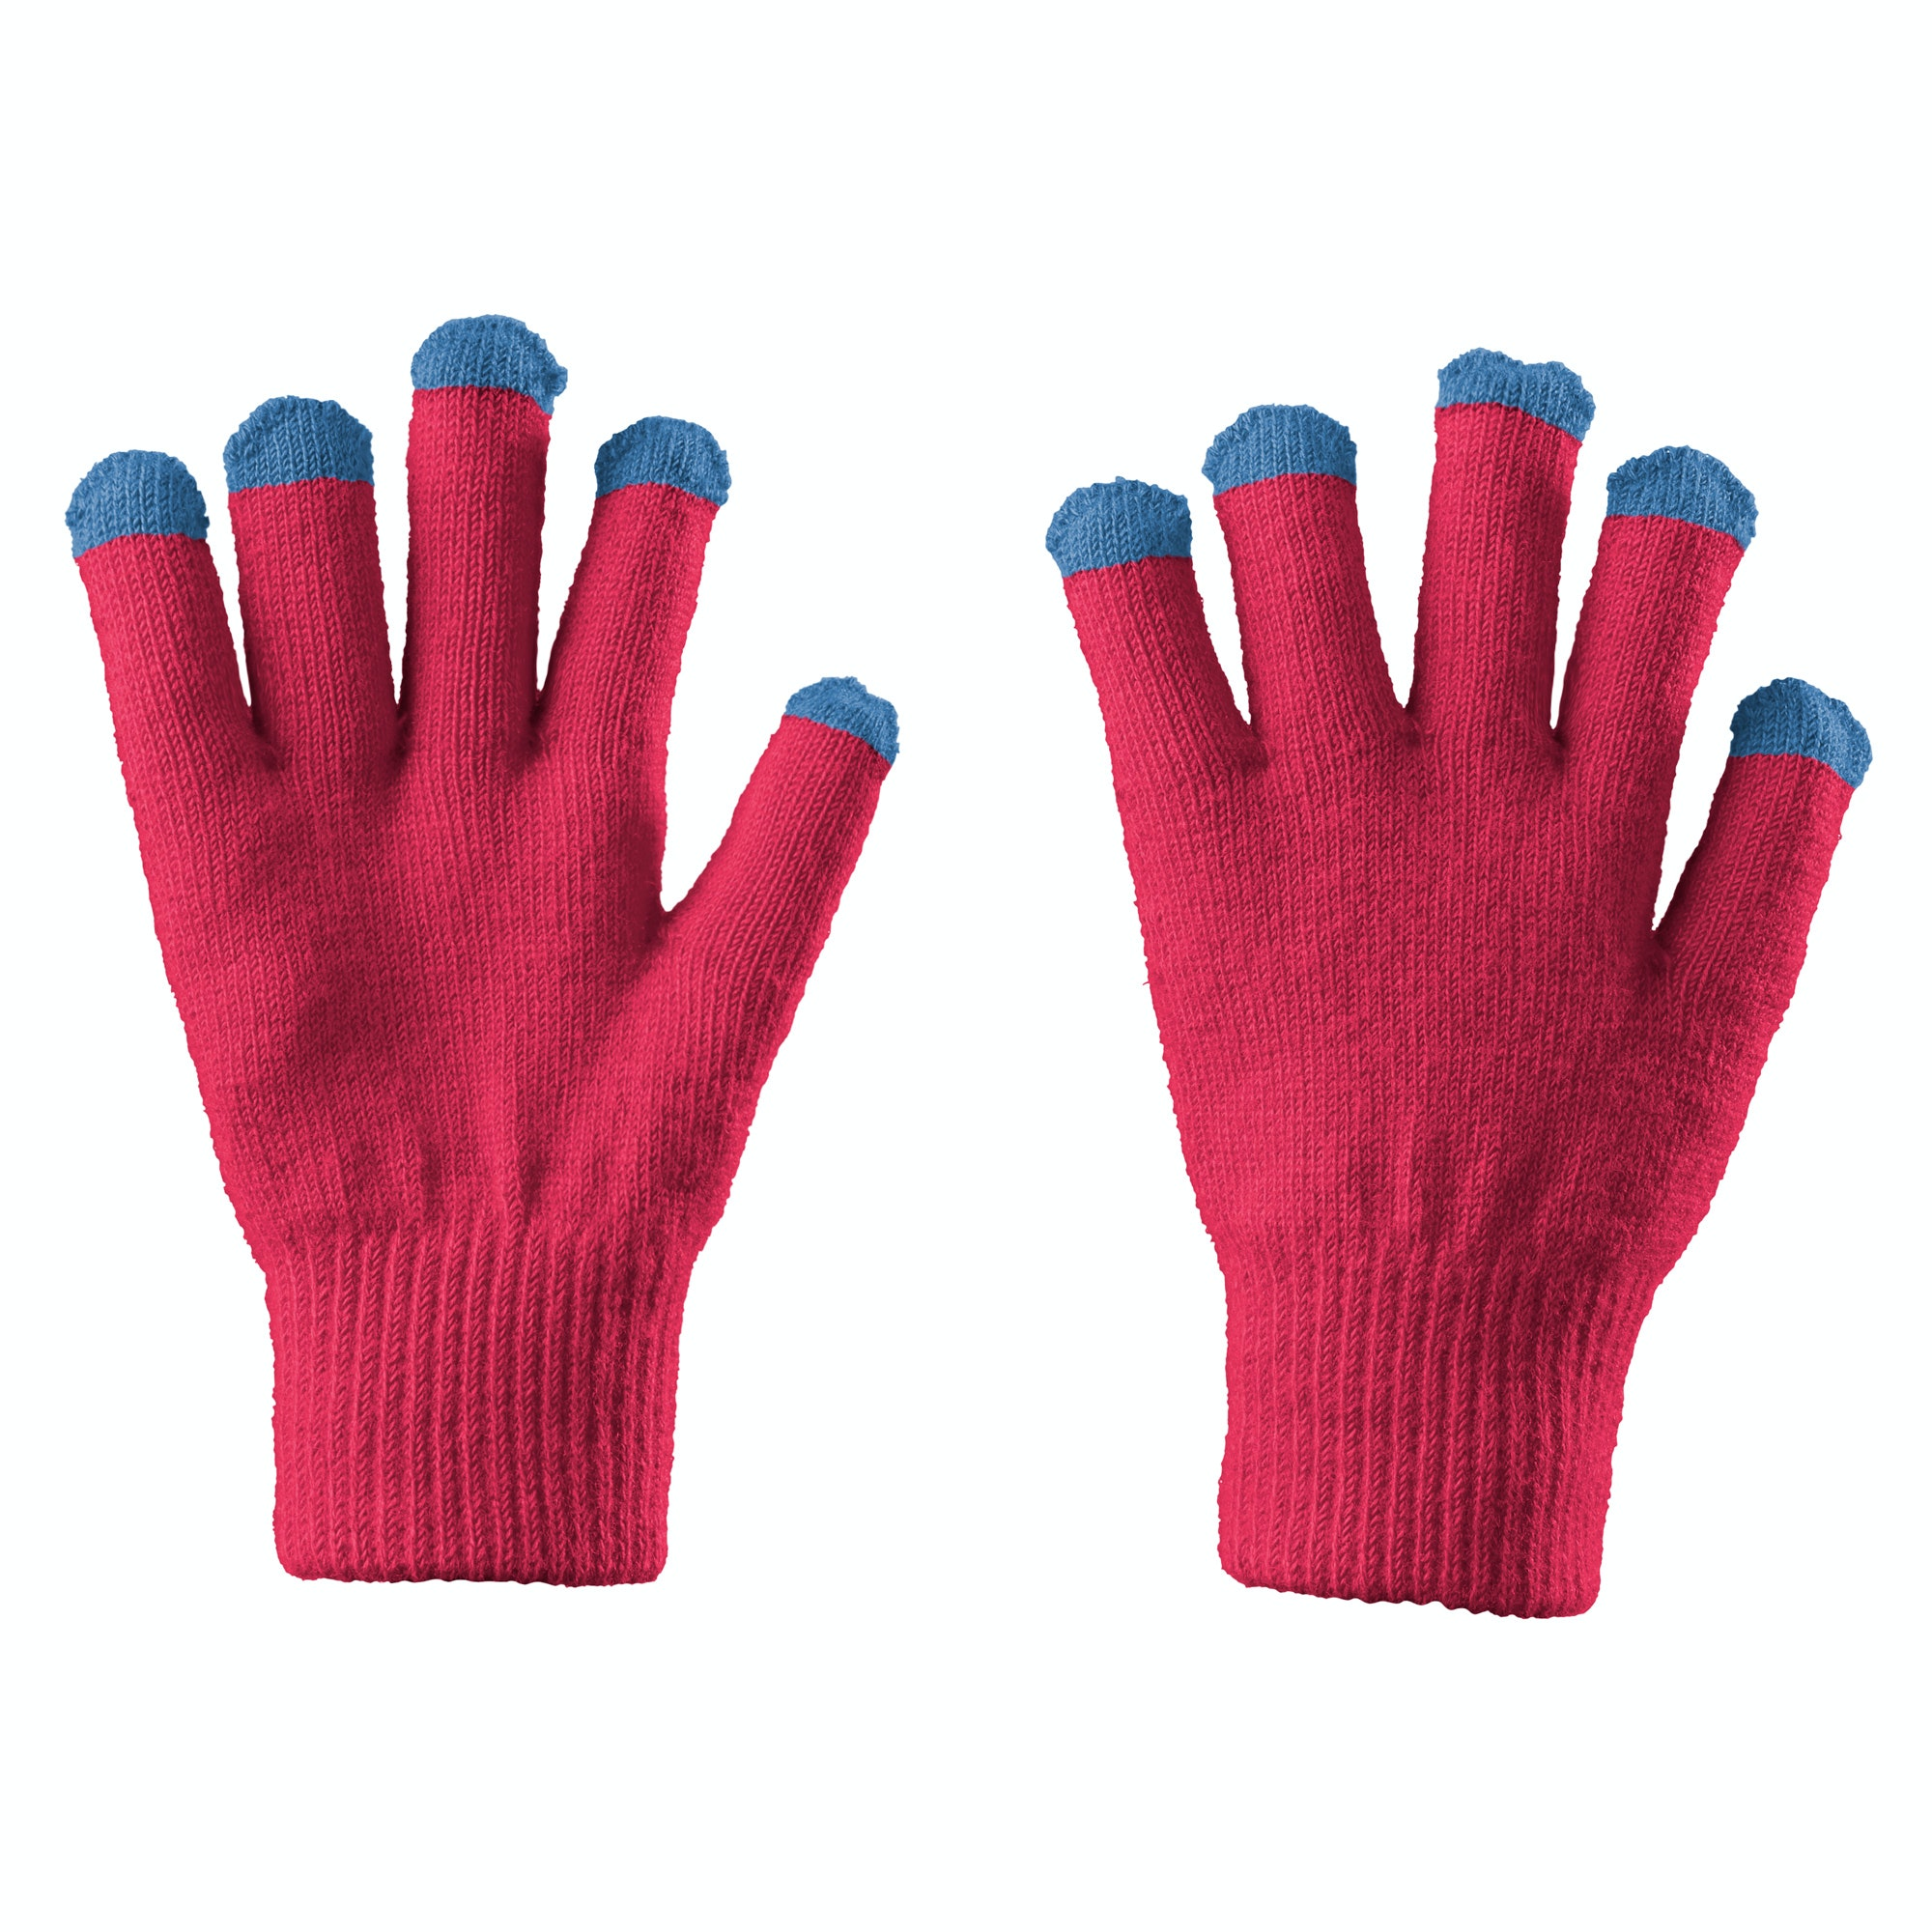 Kathmandu Renar Kids Girls Boys Quick Drying Mittens Warm ...